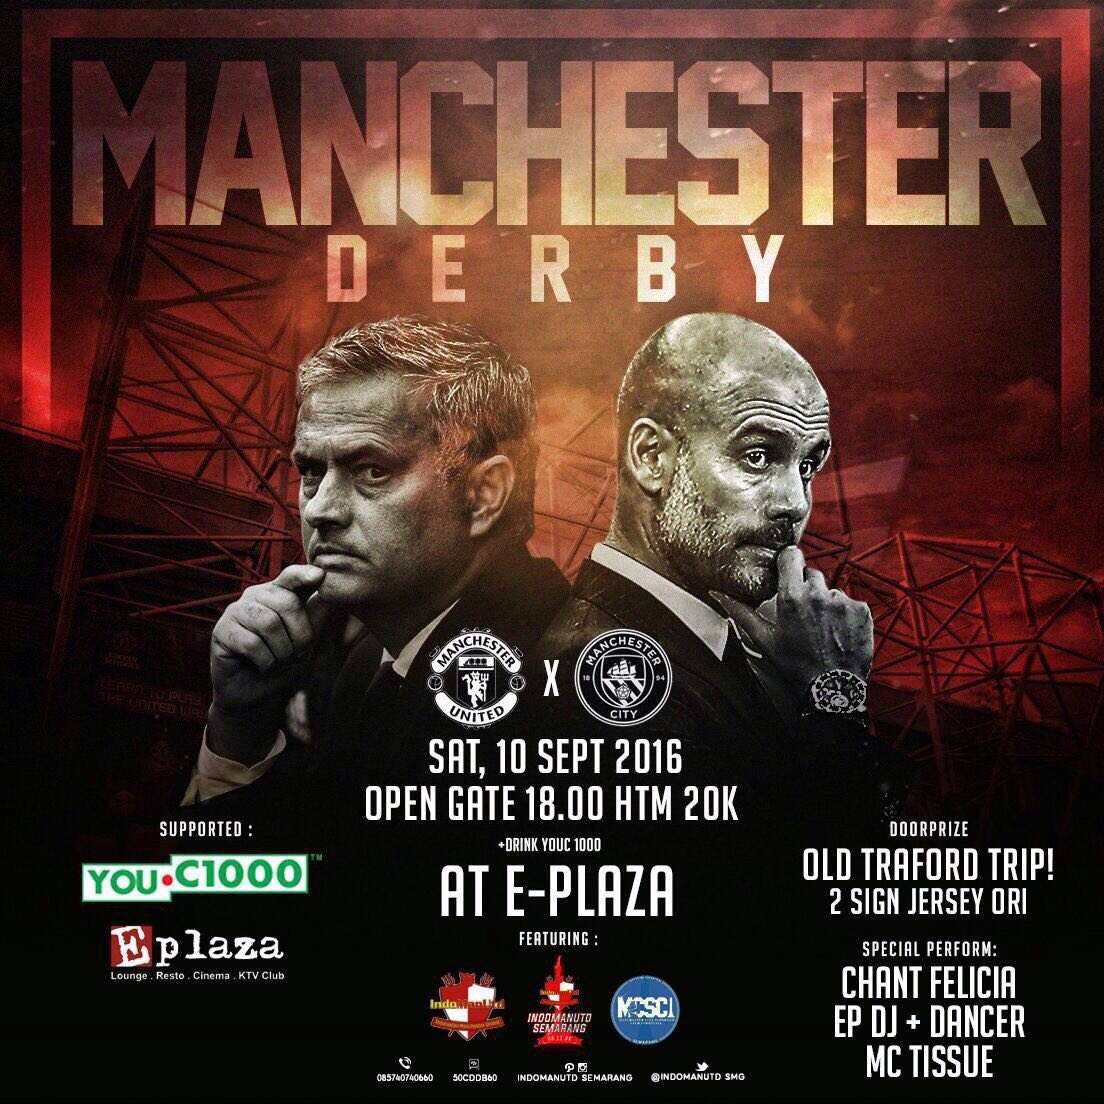 Don't miss it guys! Semarang dan sekitarnya @Indomanutd_Smg #INDOMANUTD #YOUC1000ISOTONIC #WEAREUNITEDID https://t.co/OGxWDHMnVq